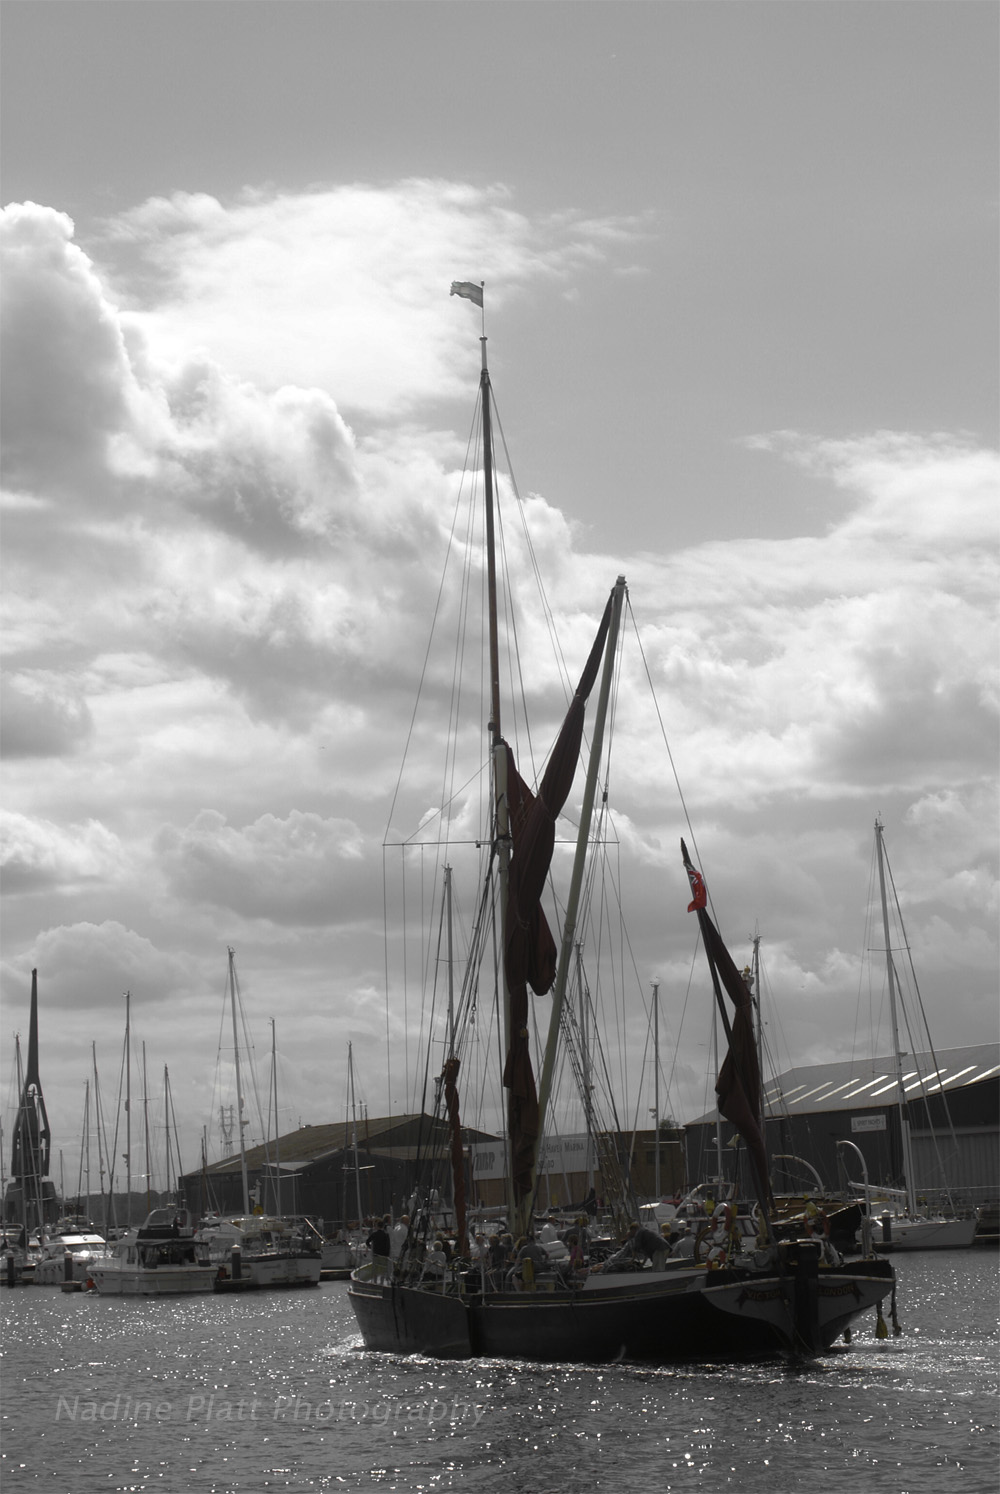 Photograph of a Thames Barge